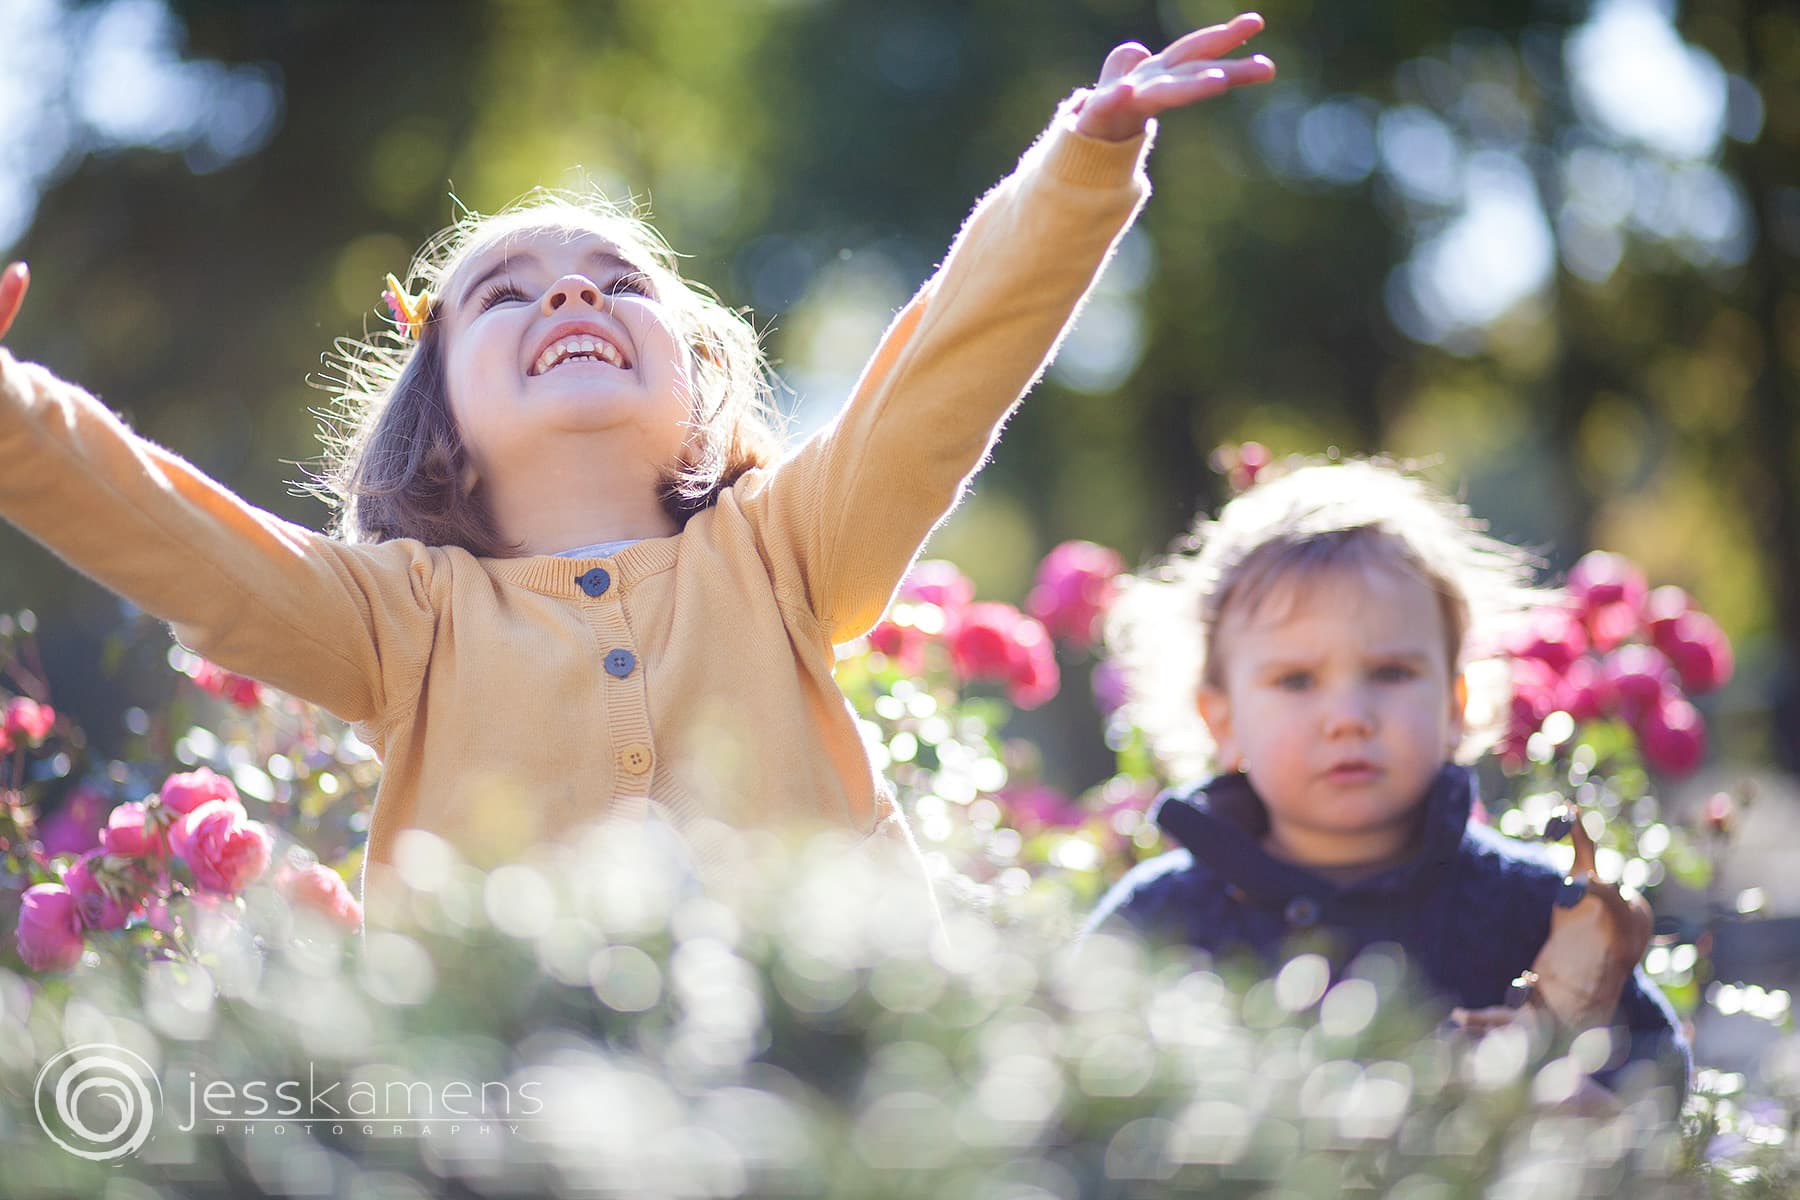 a little girl throws flowers in the air while her brother looks on confused in the background